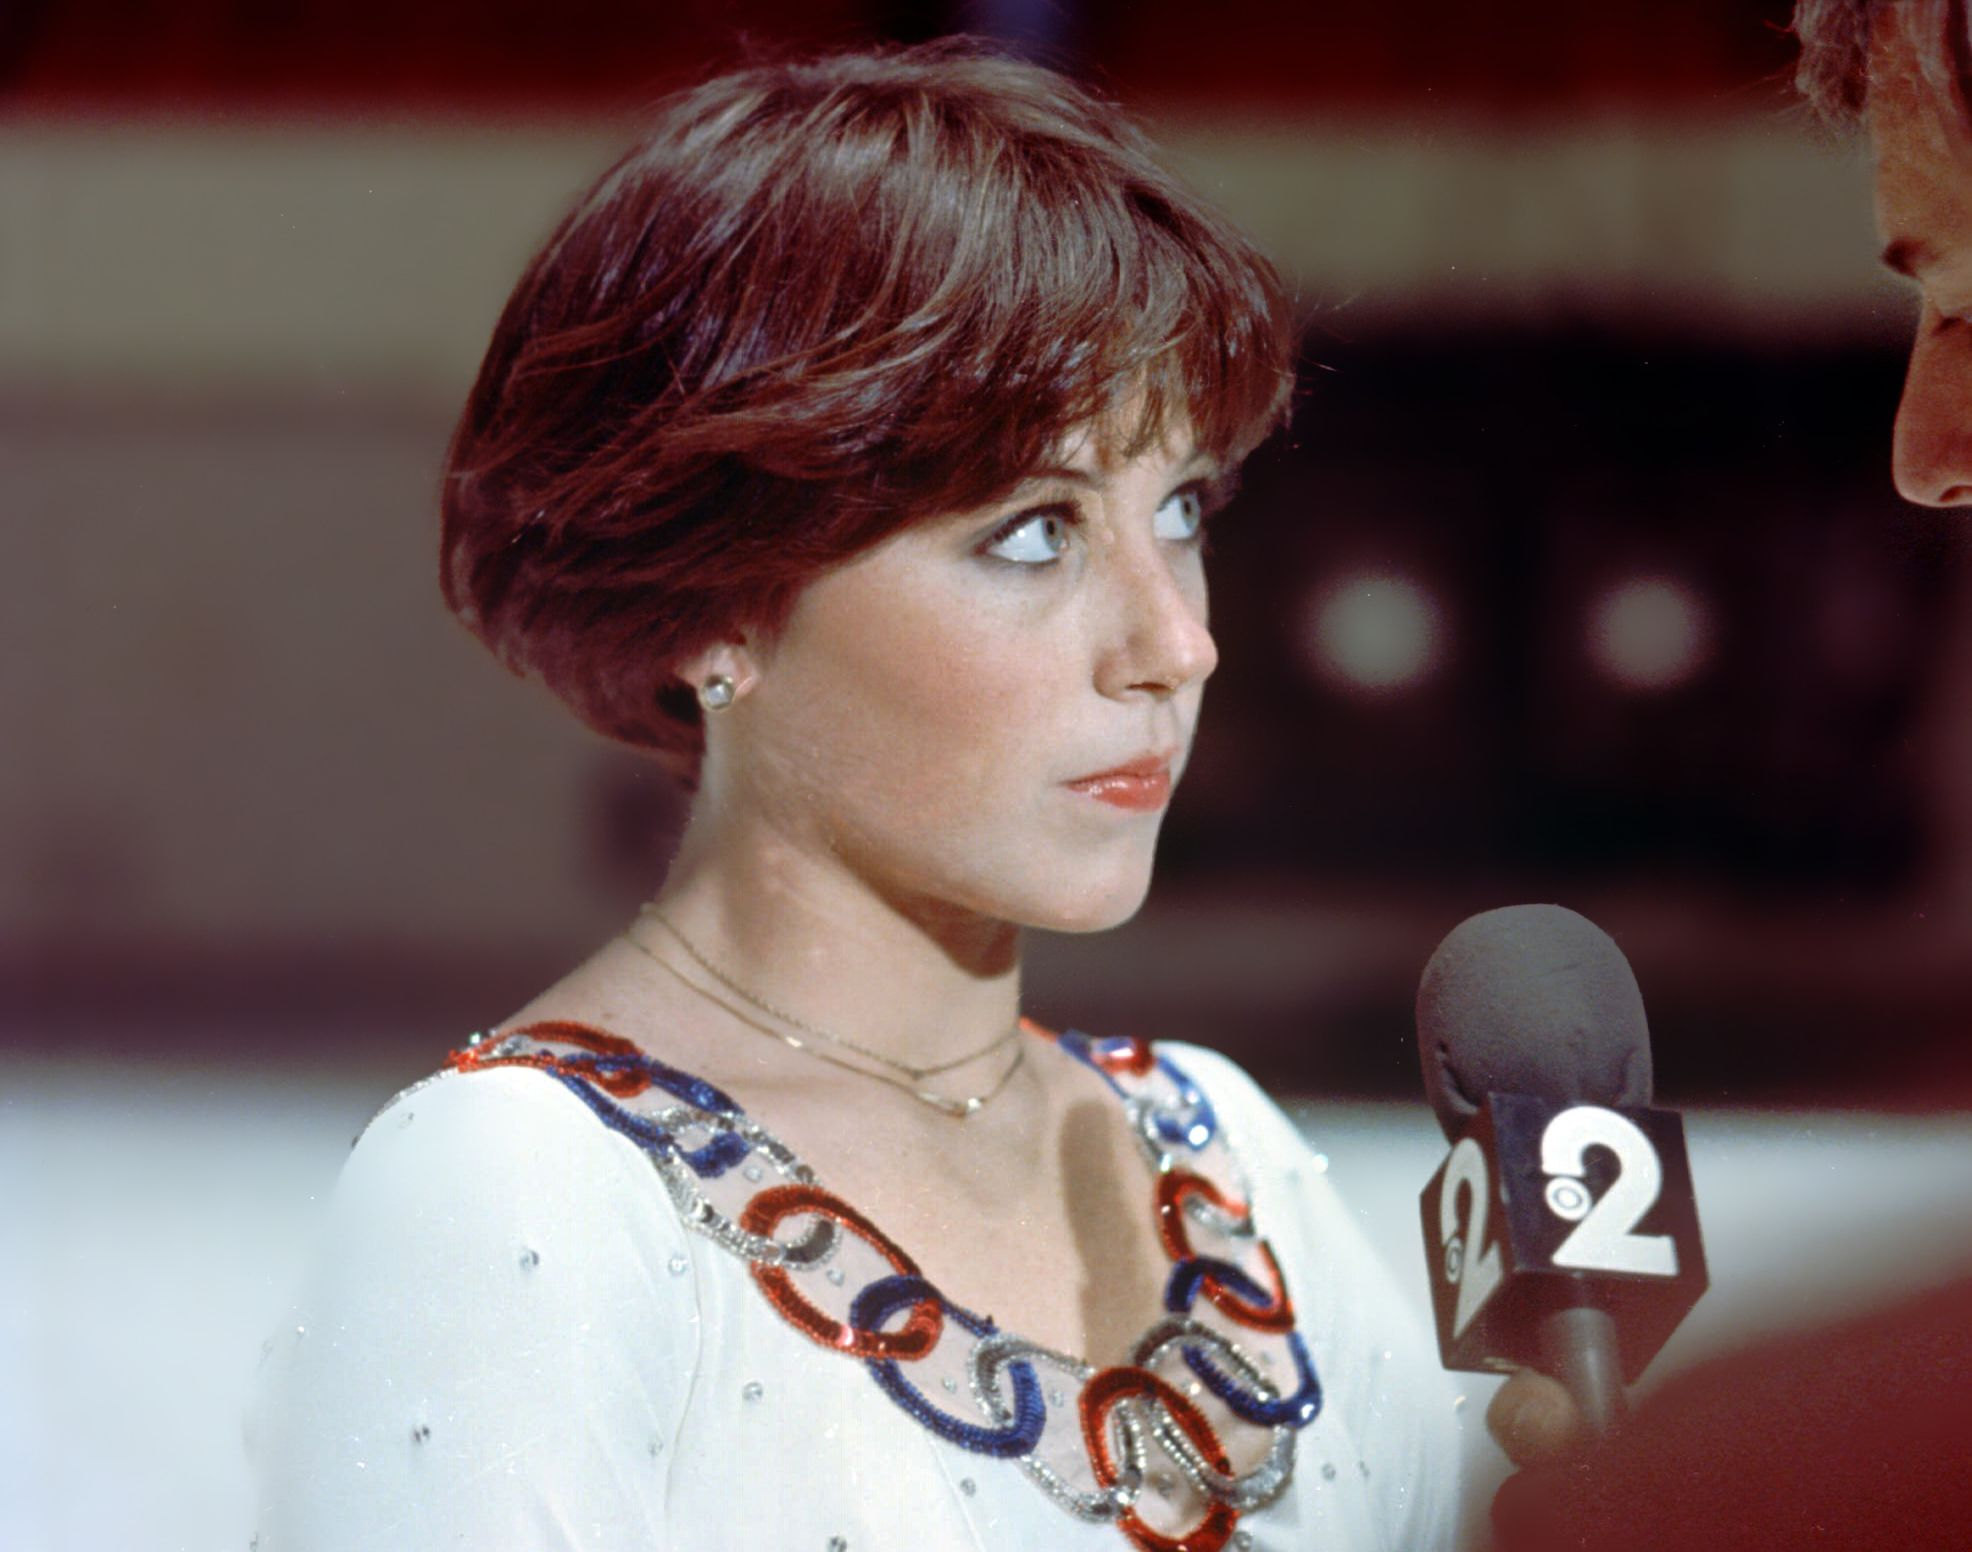 1977 Ice Skater Dorothy Hamill During An Interview Ap Photo File Dorothy Hamill Haircut Dorothy Hamill Wedge Haircut